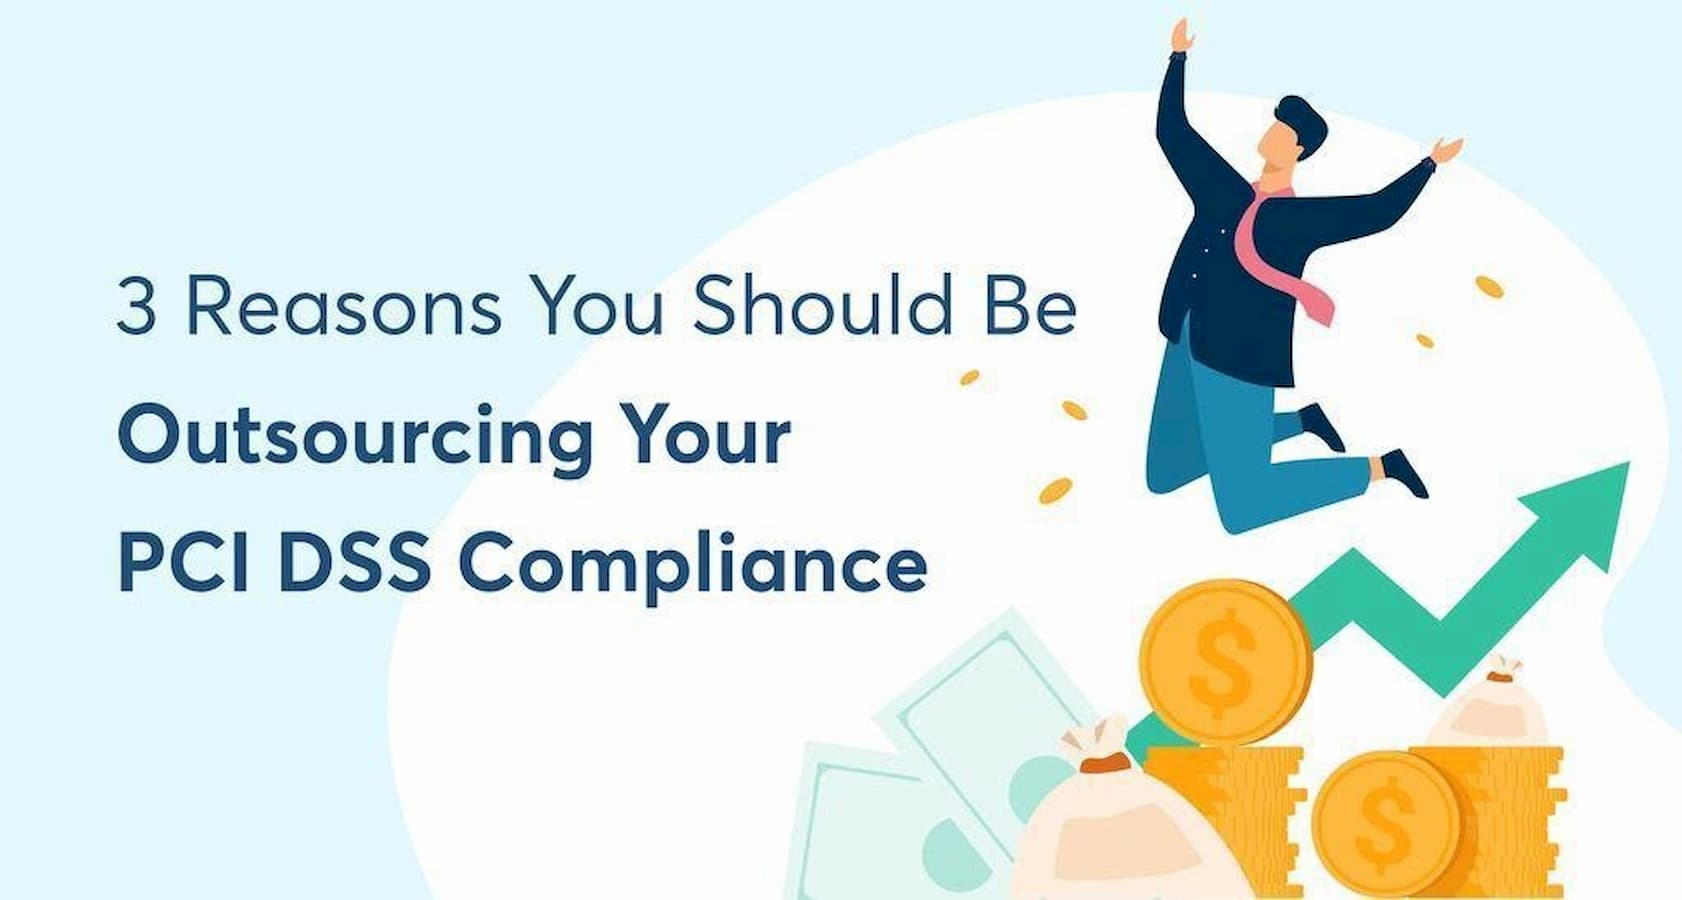 outsourcing pcc dss compliance